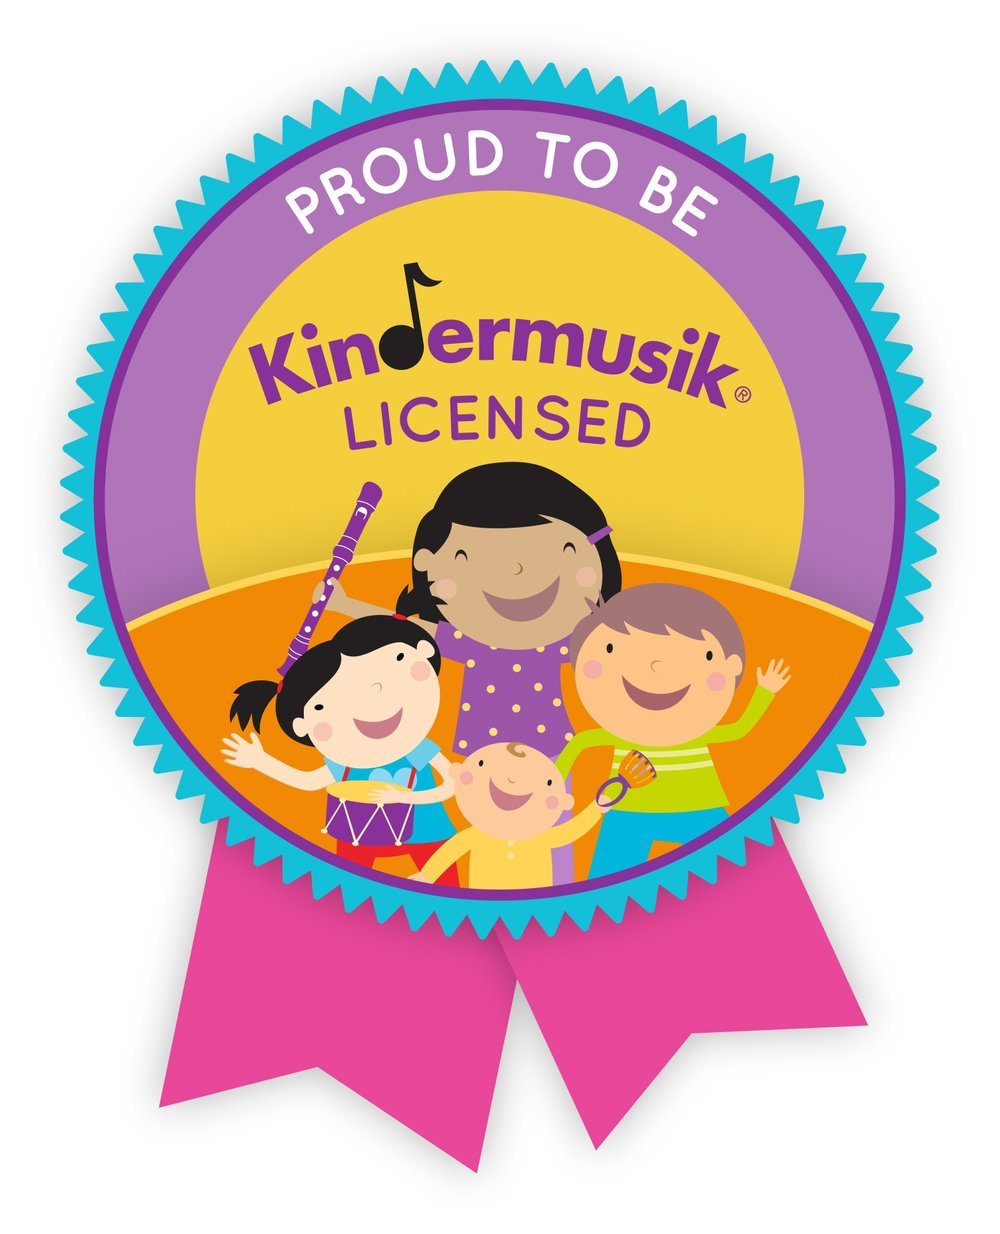 Graphic-Badge-Proud-to-be-Kindermusik-Licensed-1-1501x1852.jpg